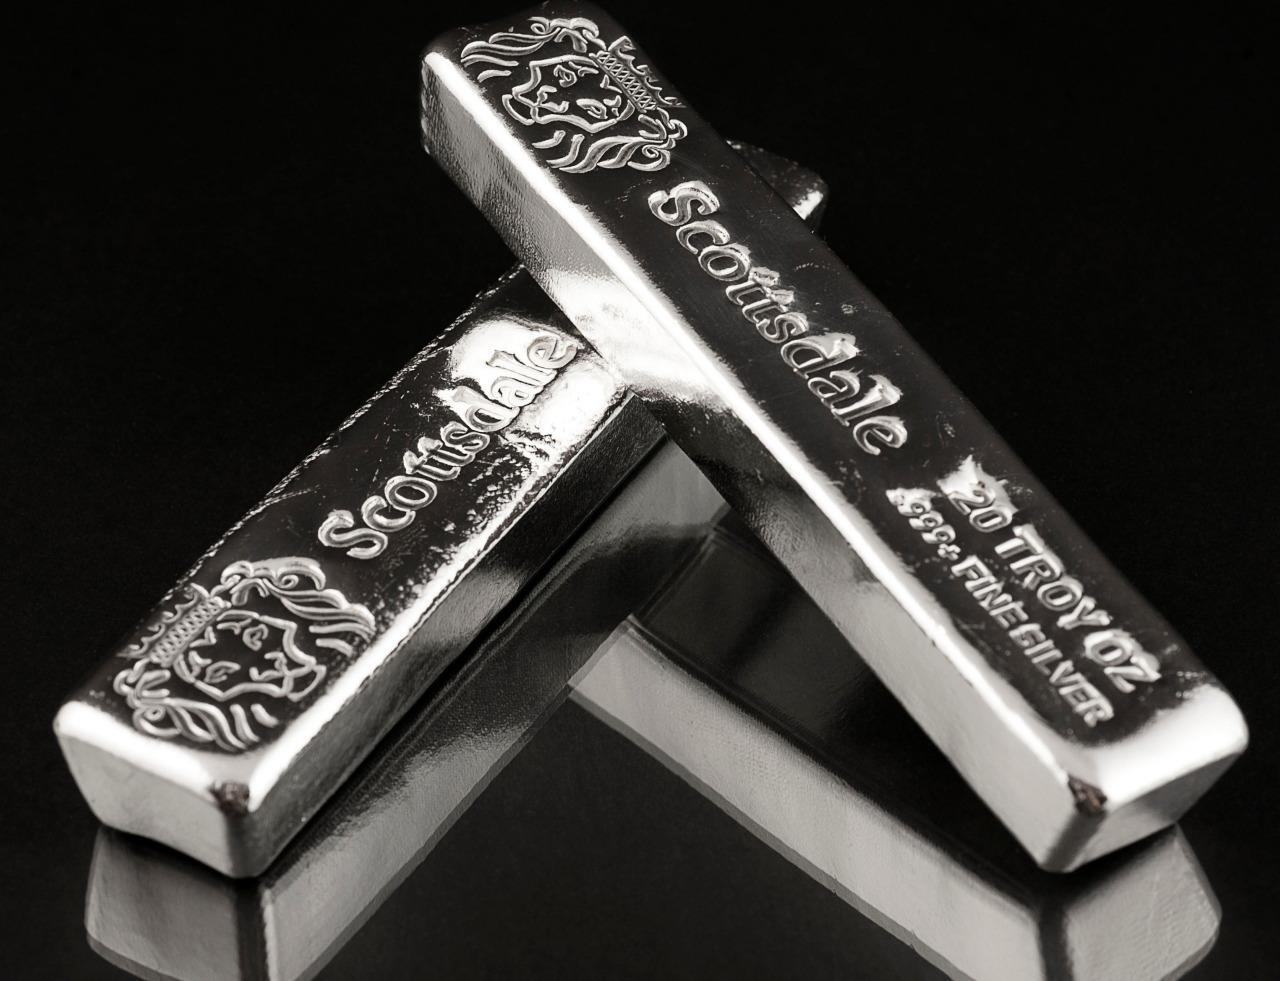 20 Oz 999 Silver Bullion Long Cast Bar By Scottsdale Mint